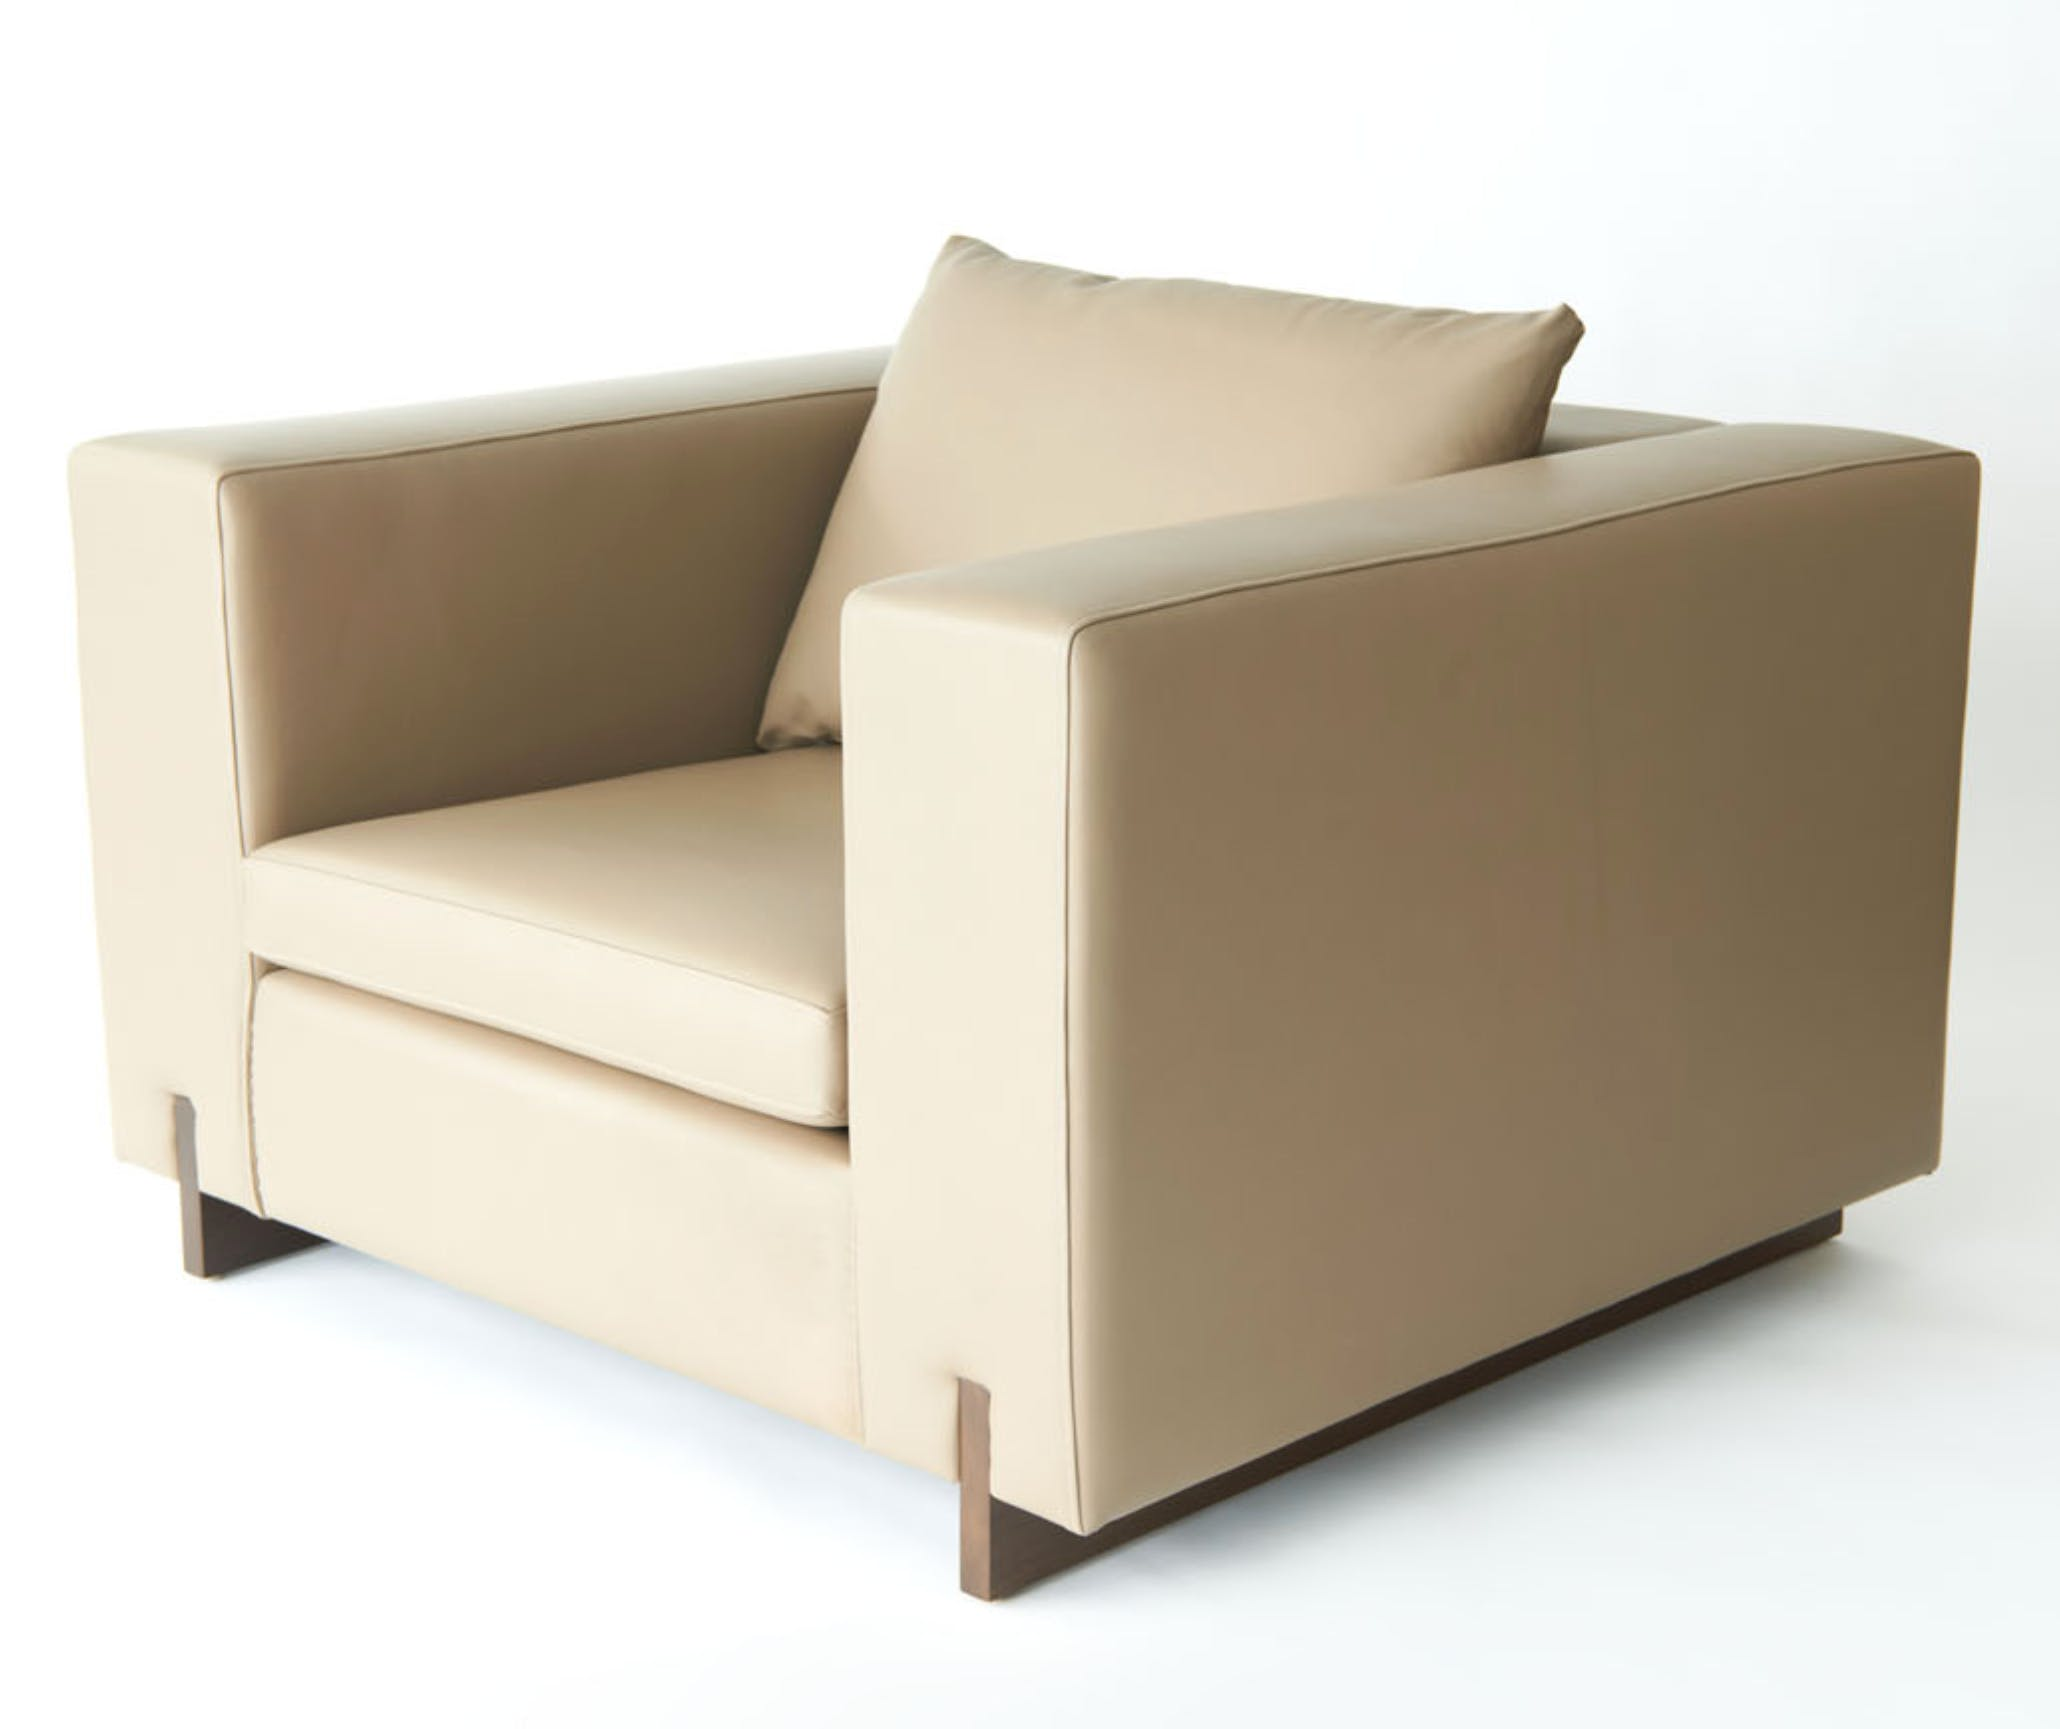 Phase Design Primetime Chair Angle Haute Living